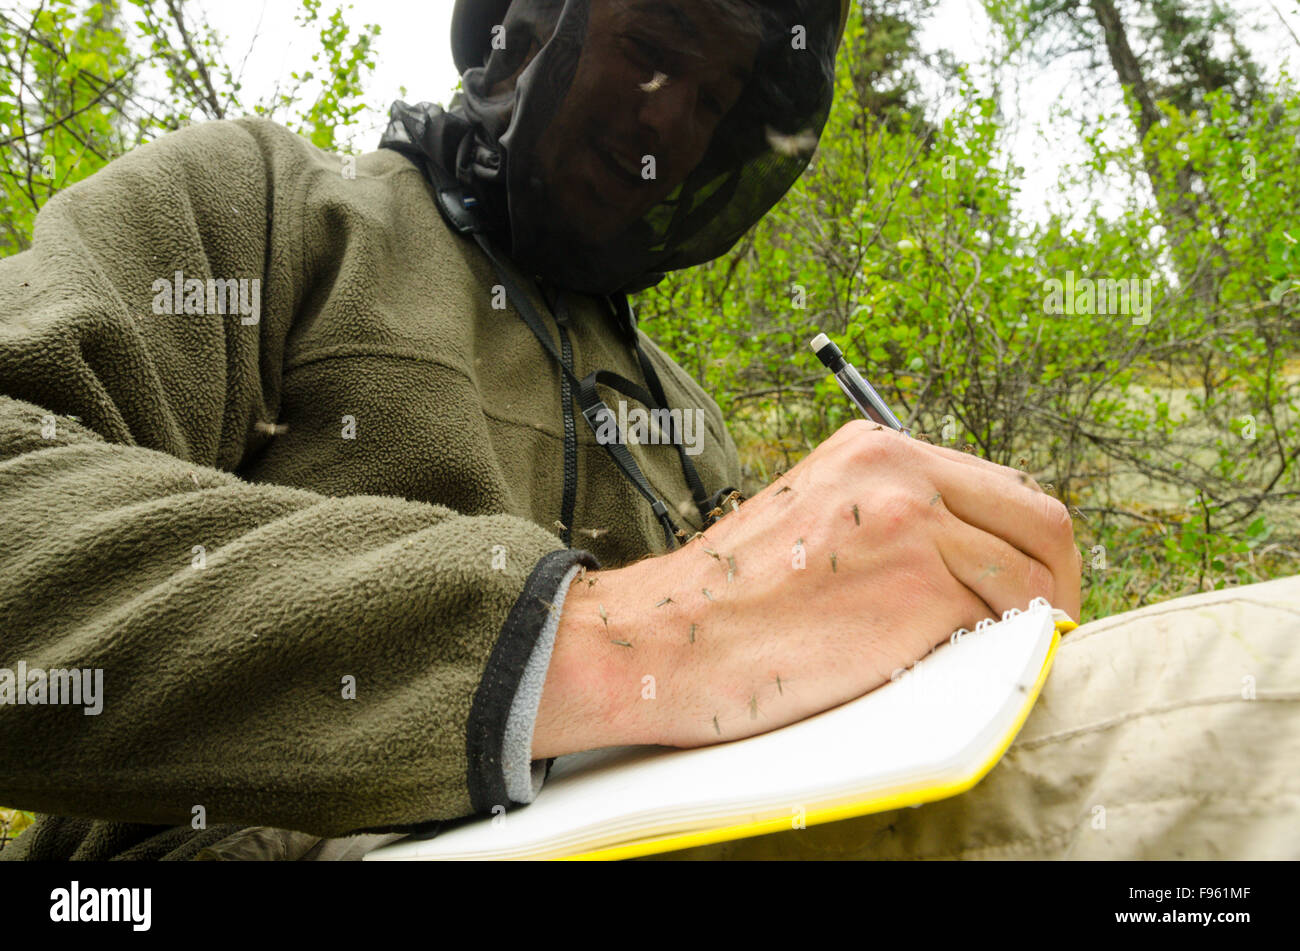 A biologist makes notes while being attacked by hordes of mosquitos on his hand, northern British Columbia - Stock Image